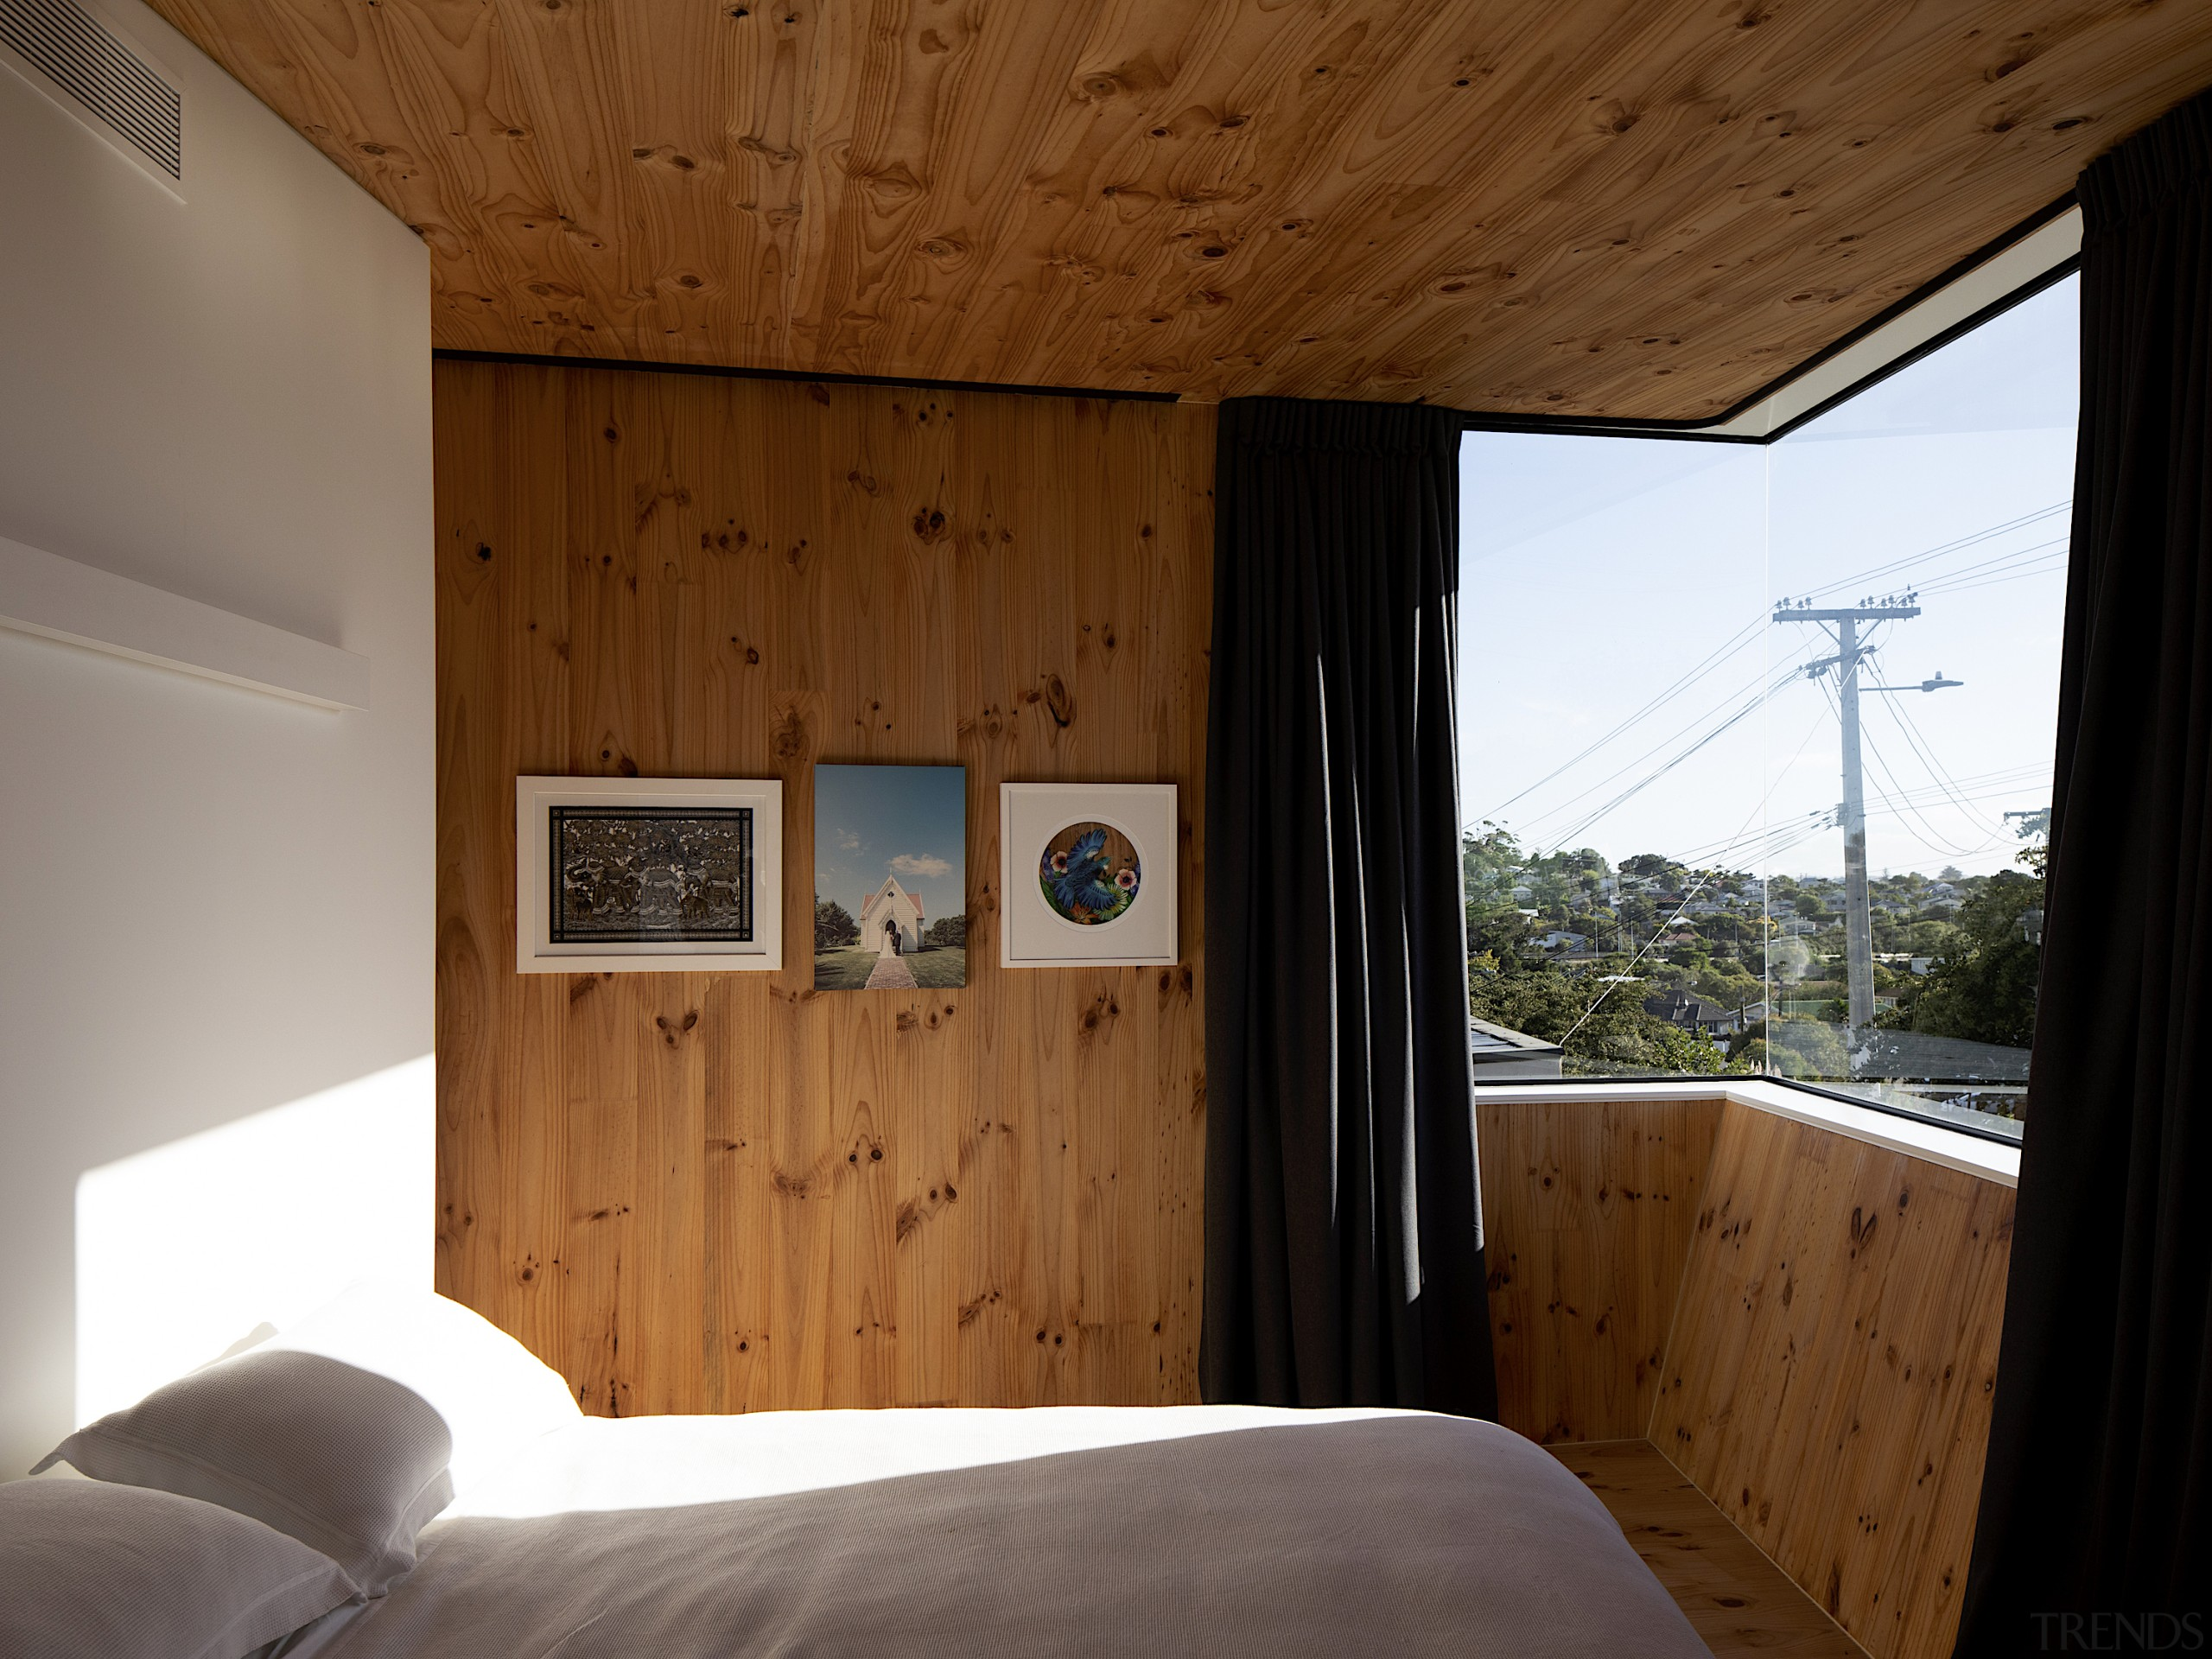 Structurally, the CLT panels create a box beam brown